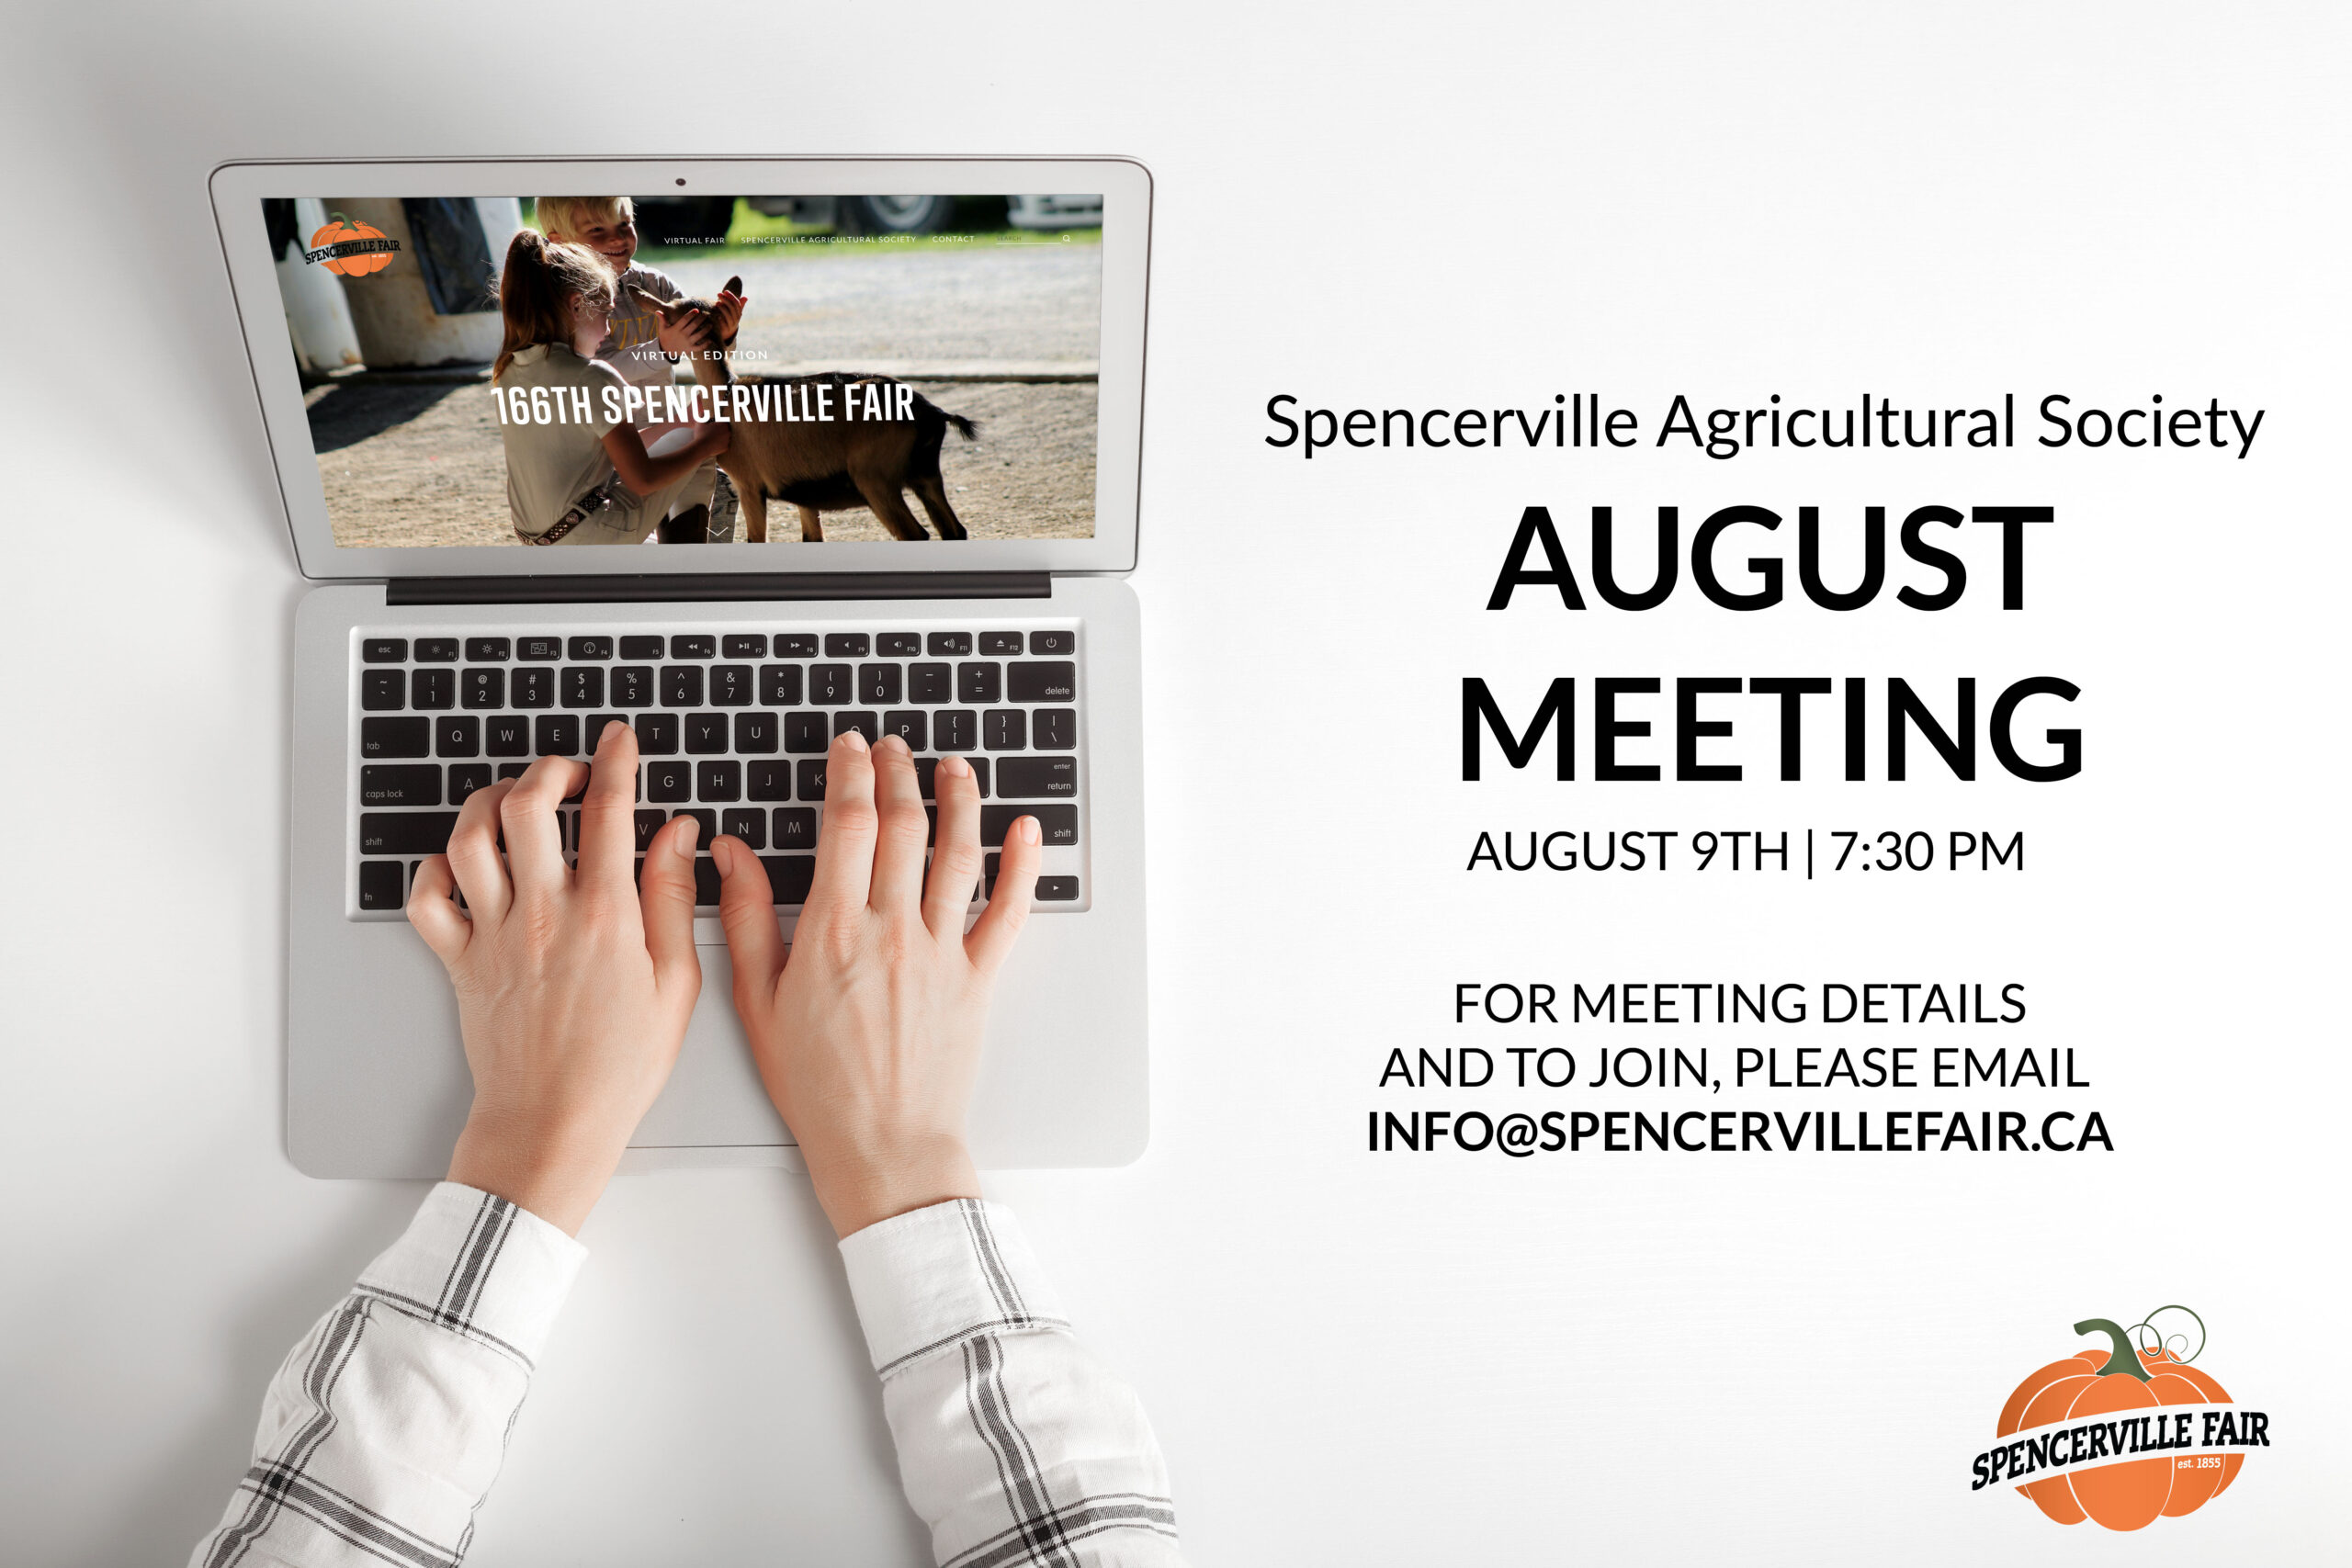 laptop with hands on the keyboard.  Says Spencerville Agriculture Society August Meeting.  August 9th, 7:30 pm. For more details or to join, email infospencervillefair.ca